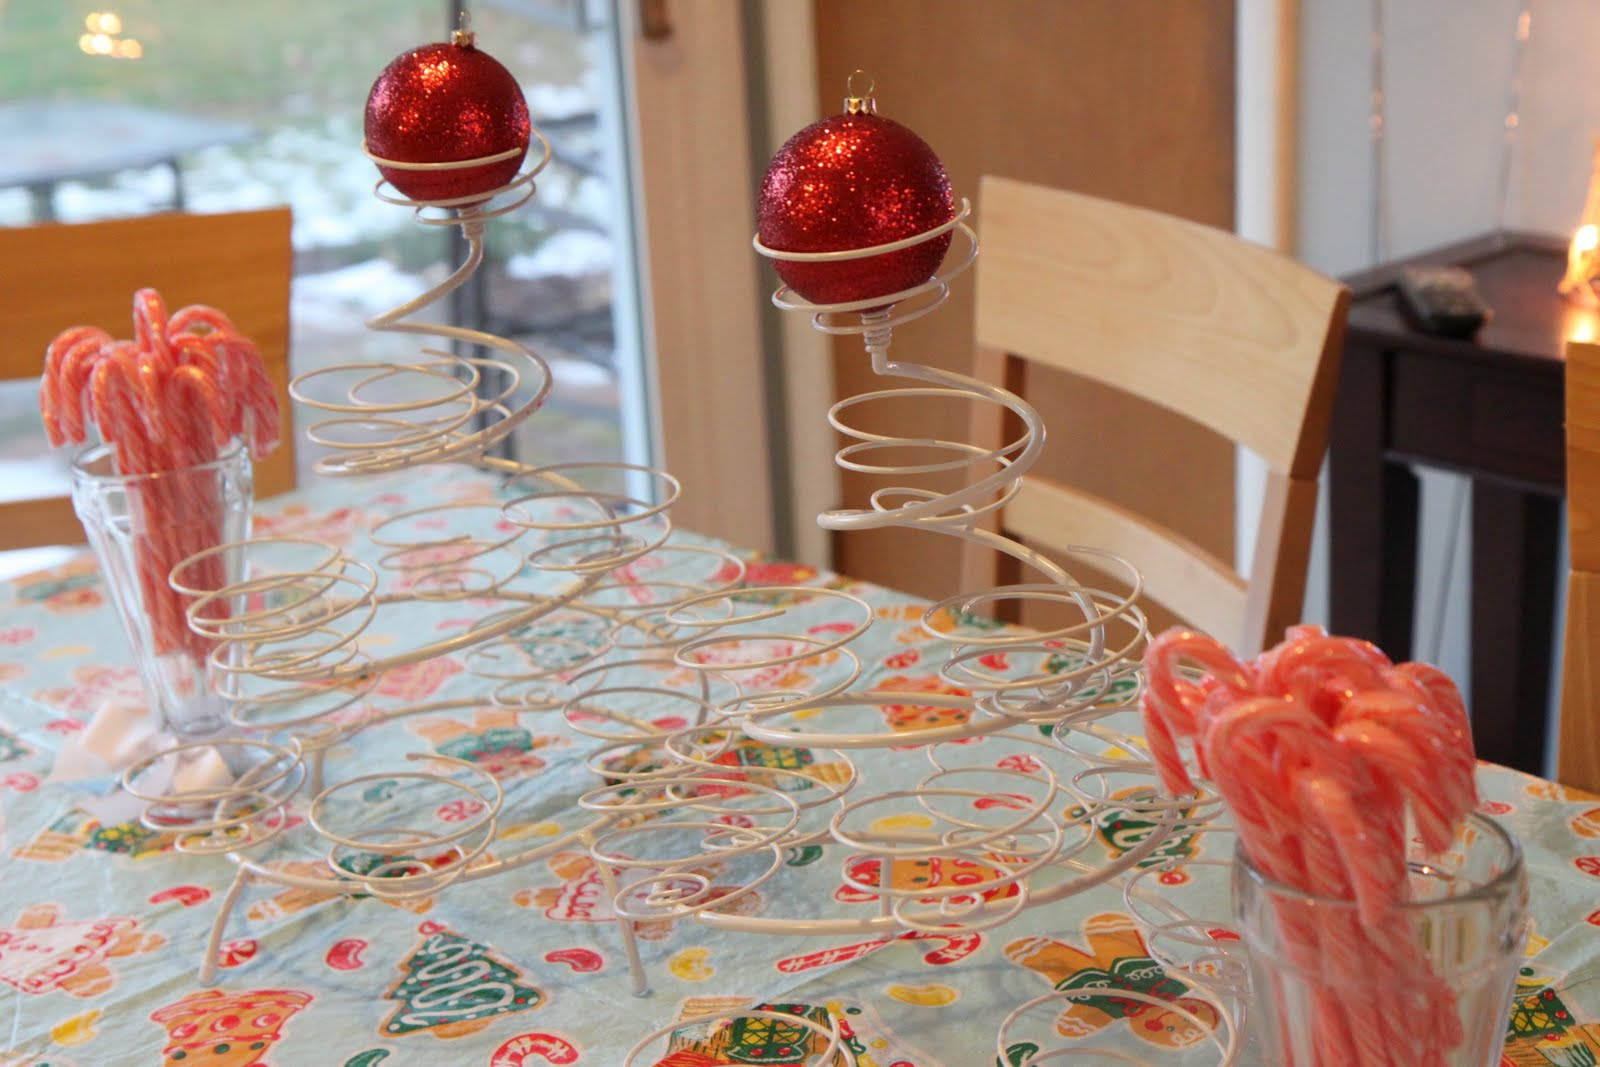 Our Thrifty (And Holiday-Inspired) Birthday Party - MomAdvice